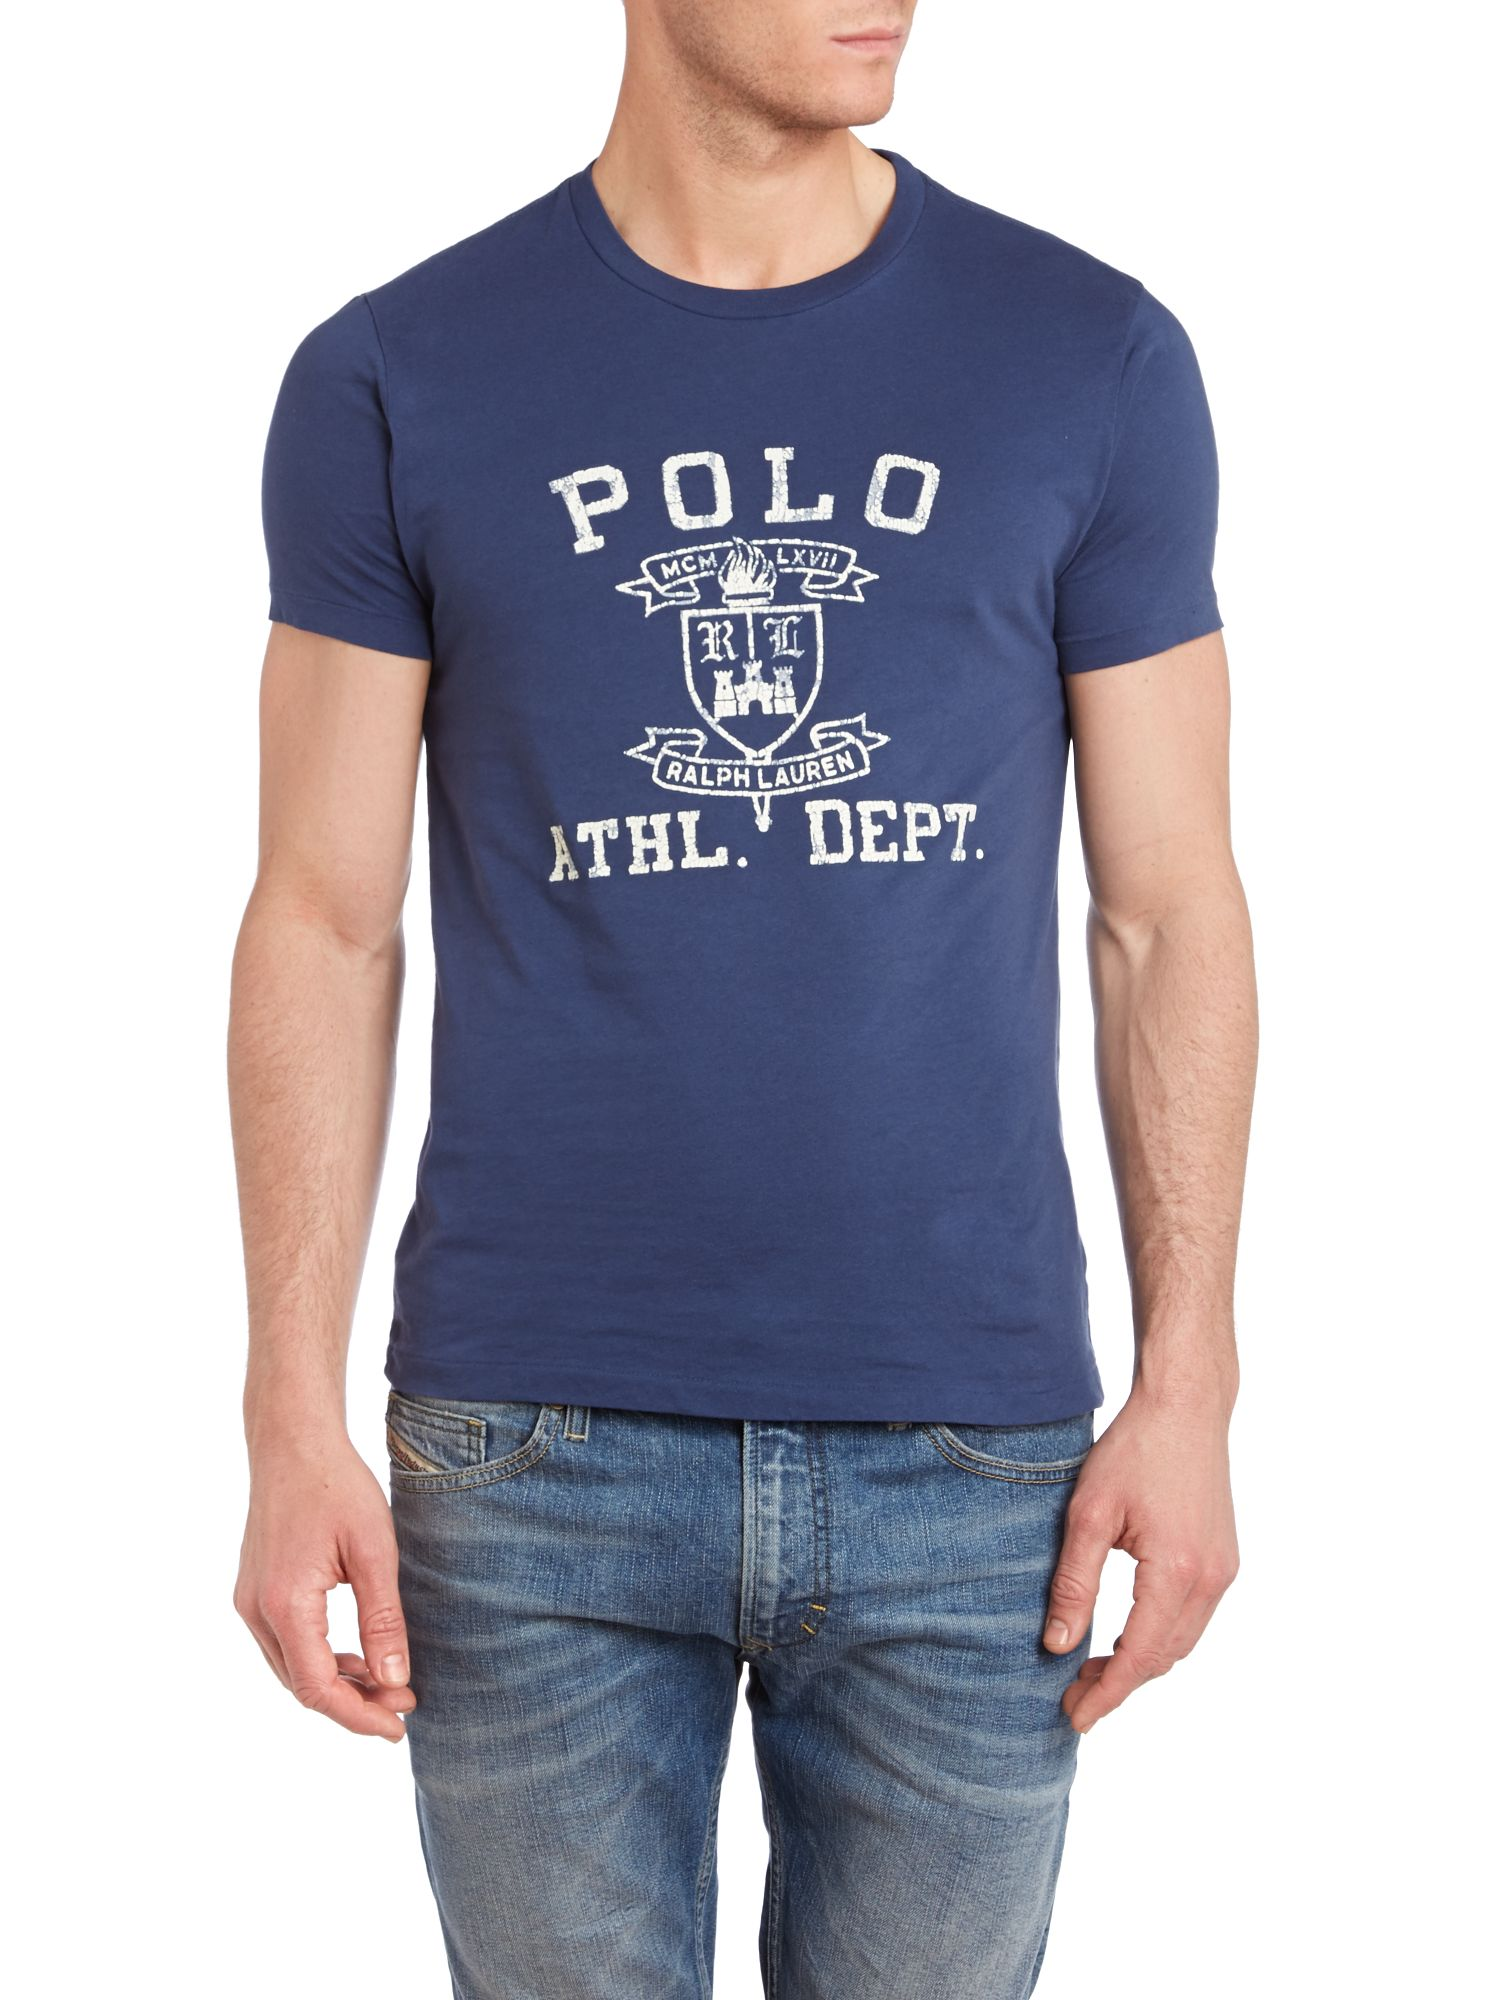 Polo athletics logo print custom fit t-shirt